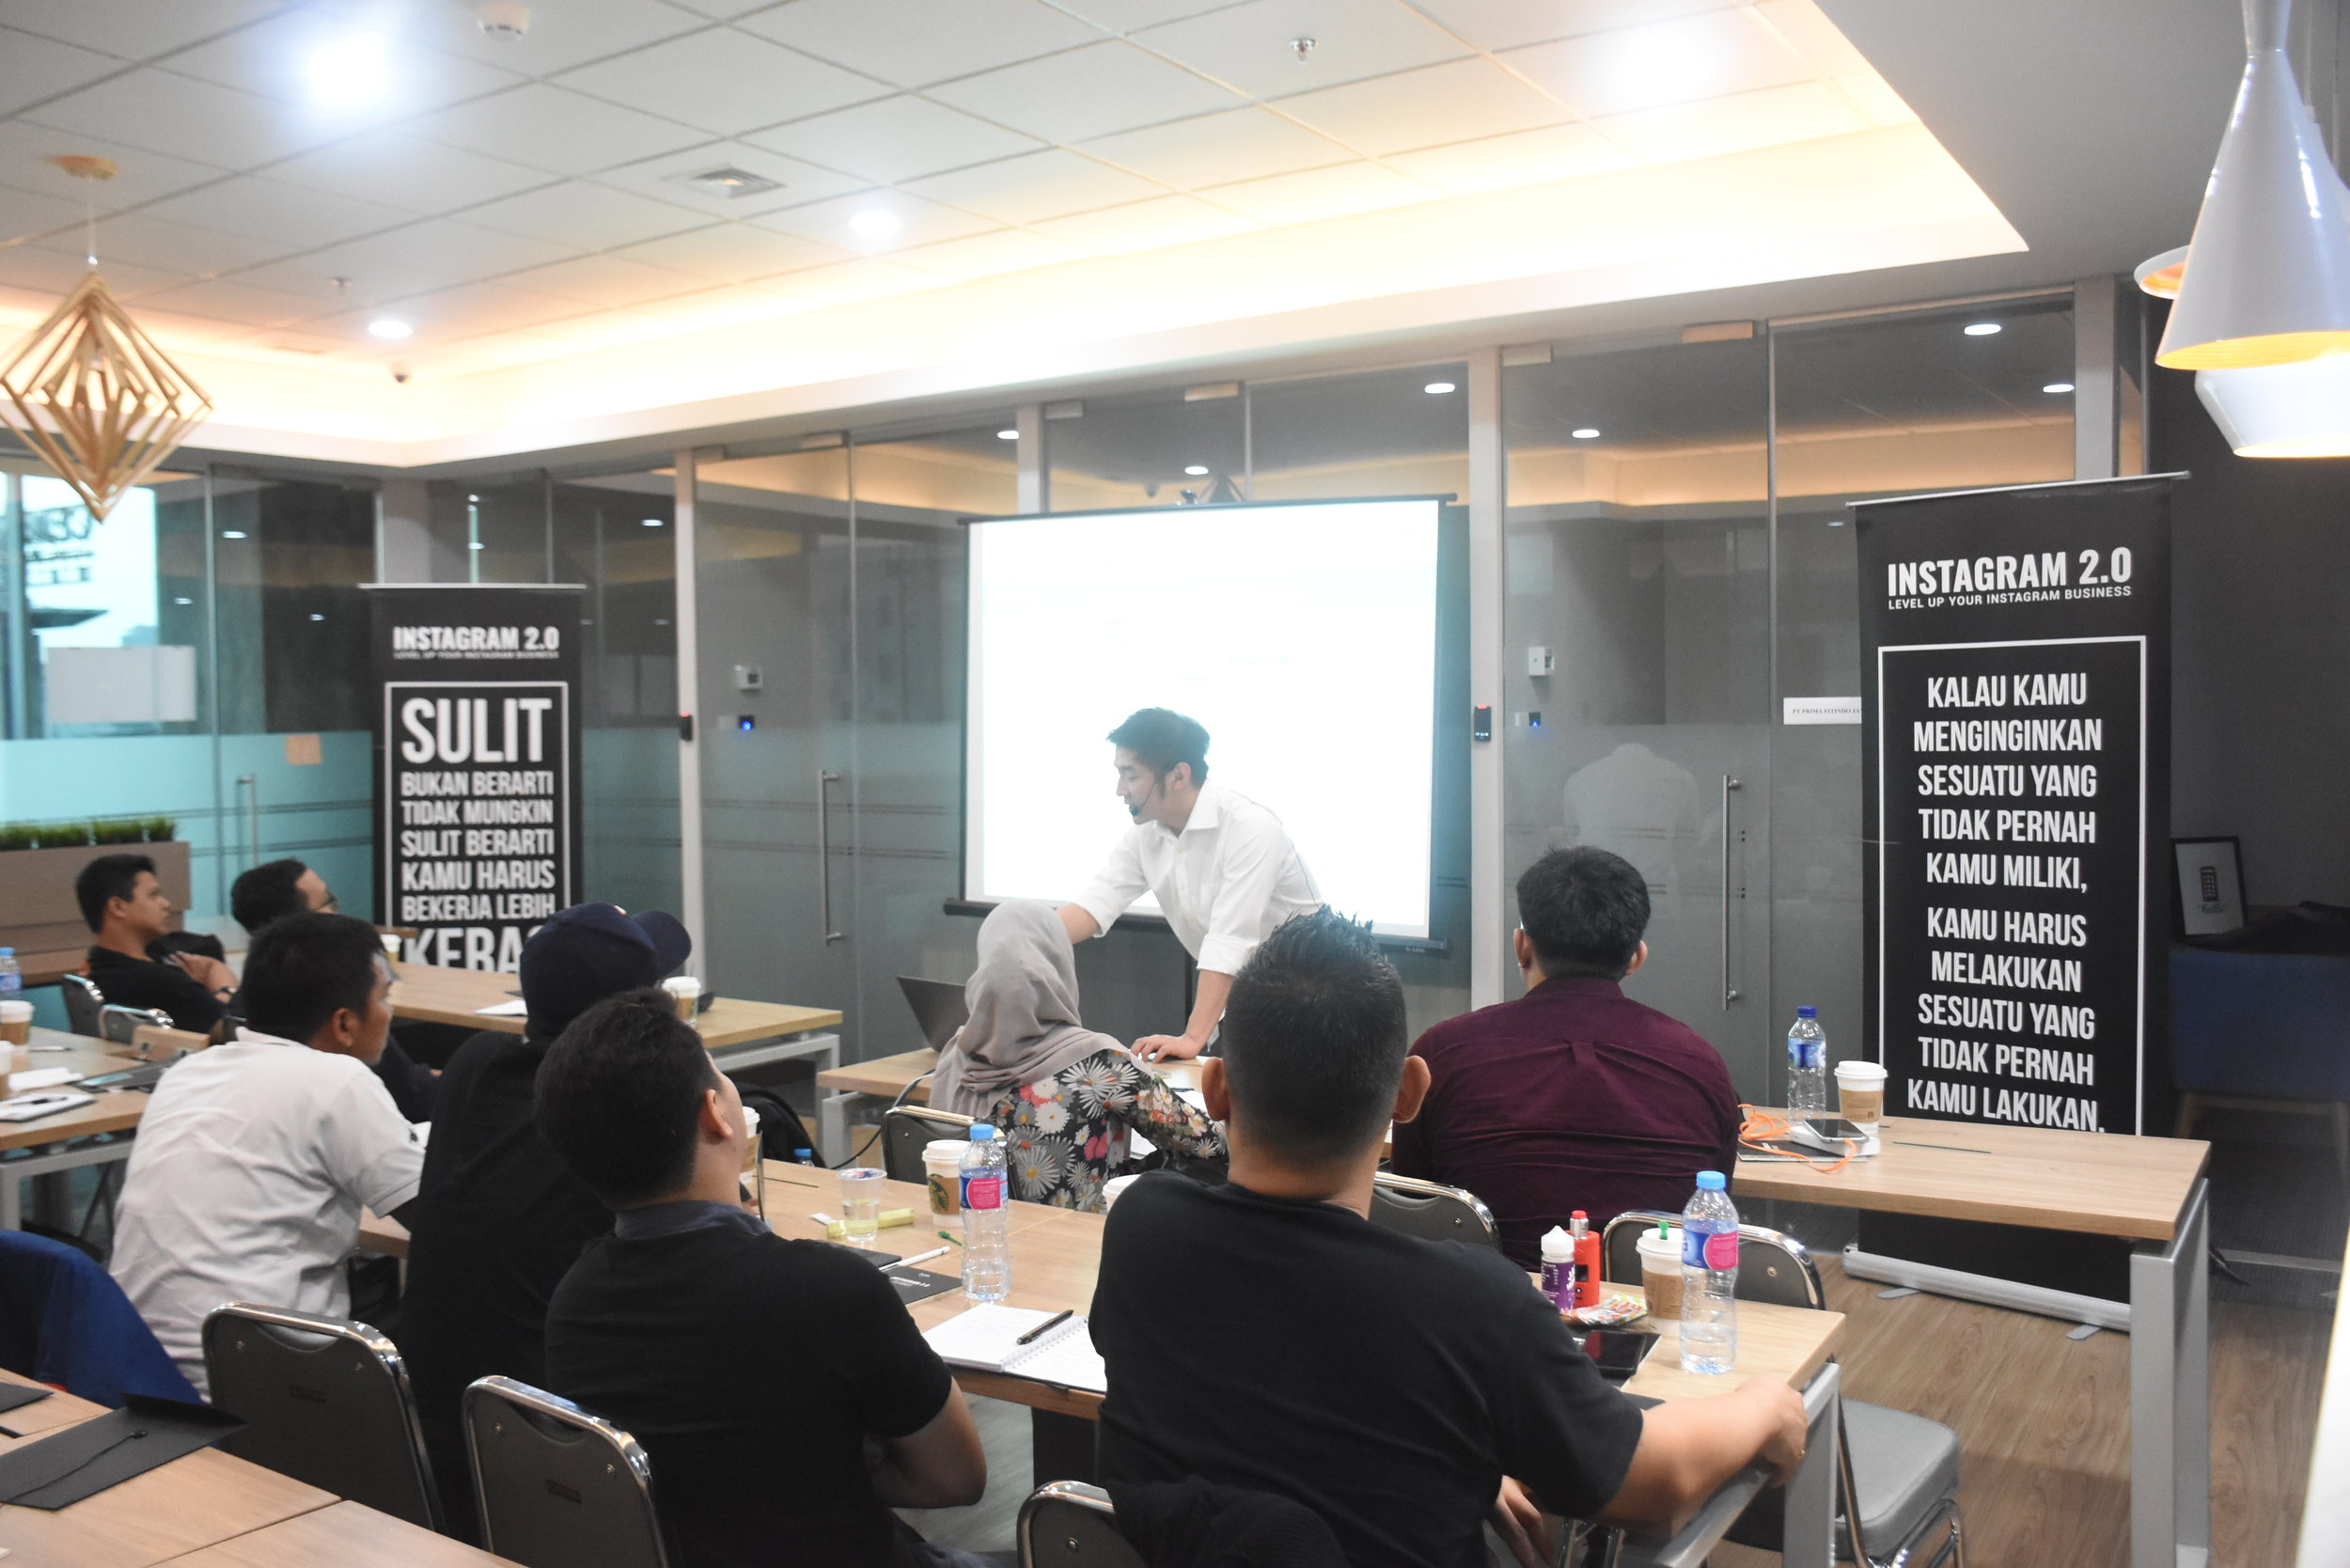 Rintisan indonesia's digital marketing workshop at avenue8 offices.  (Photo credits: Rintisan indonesia)